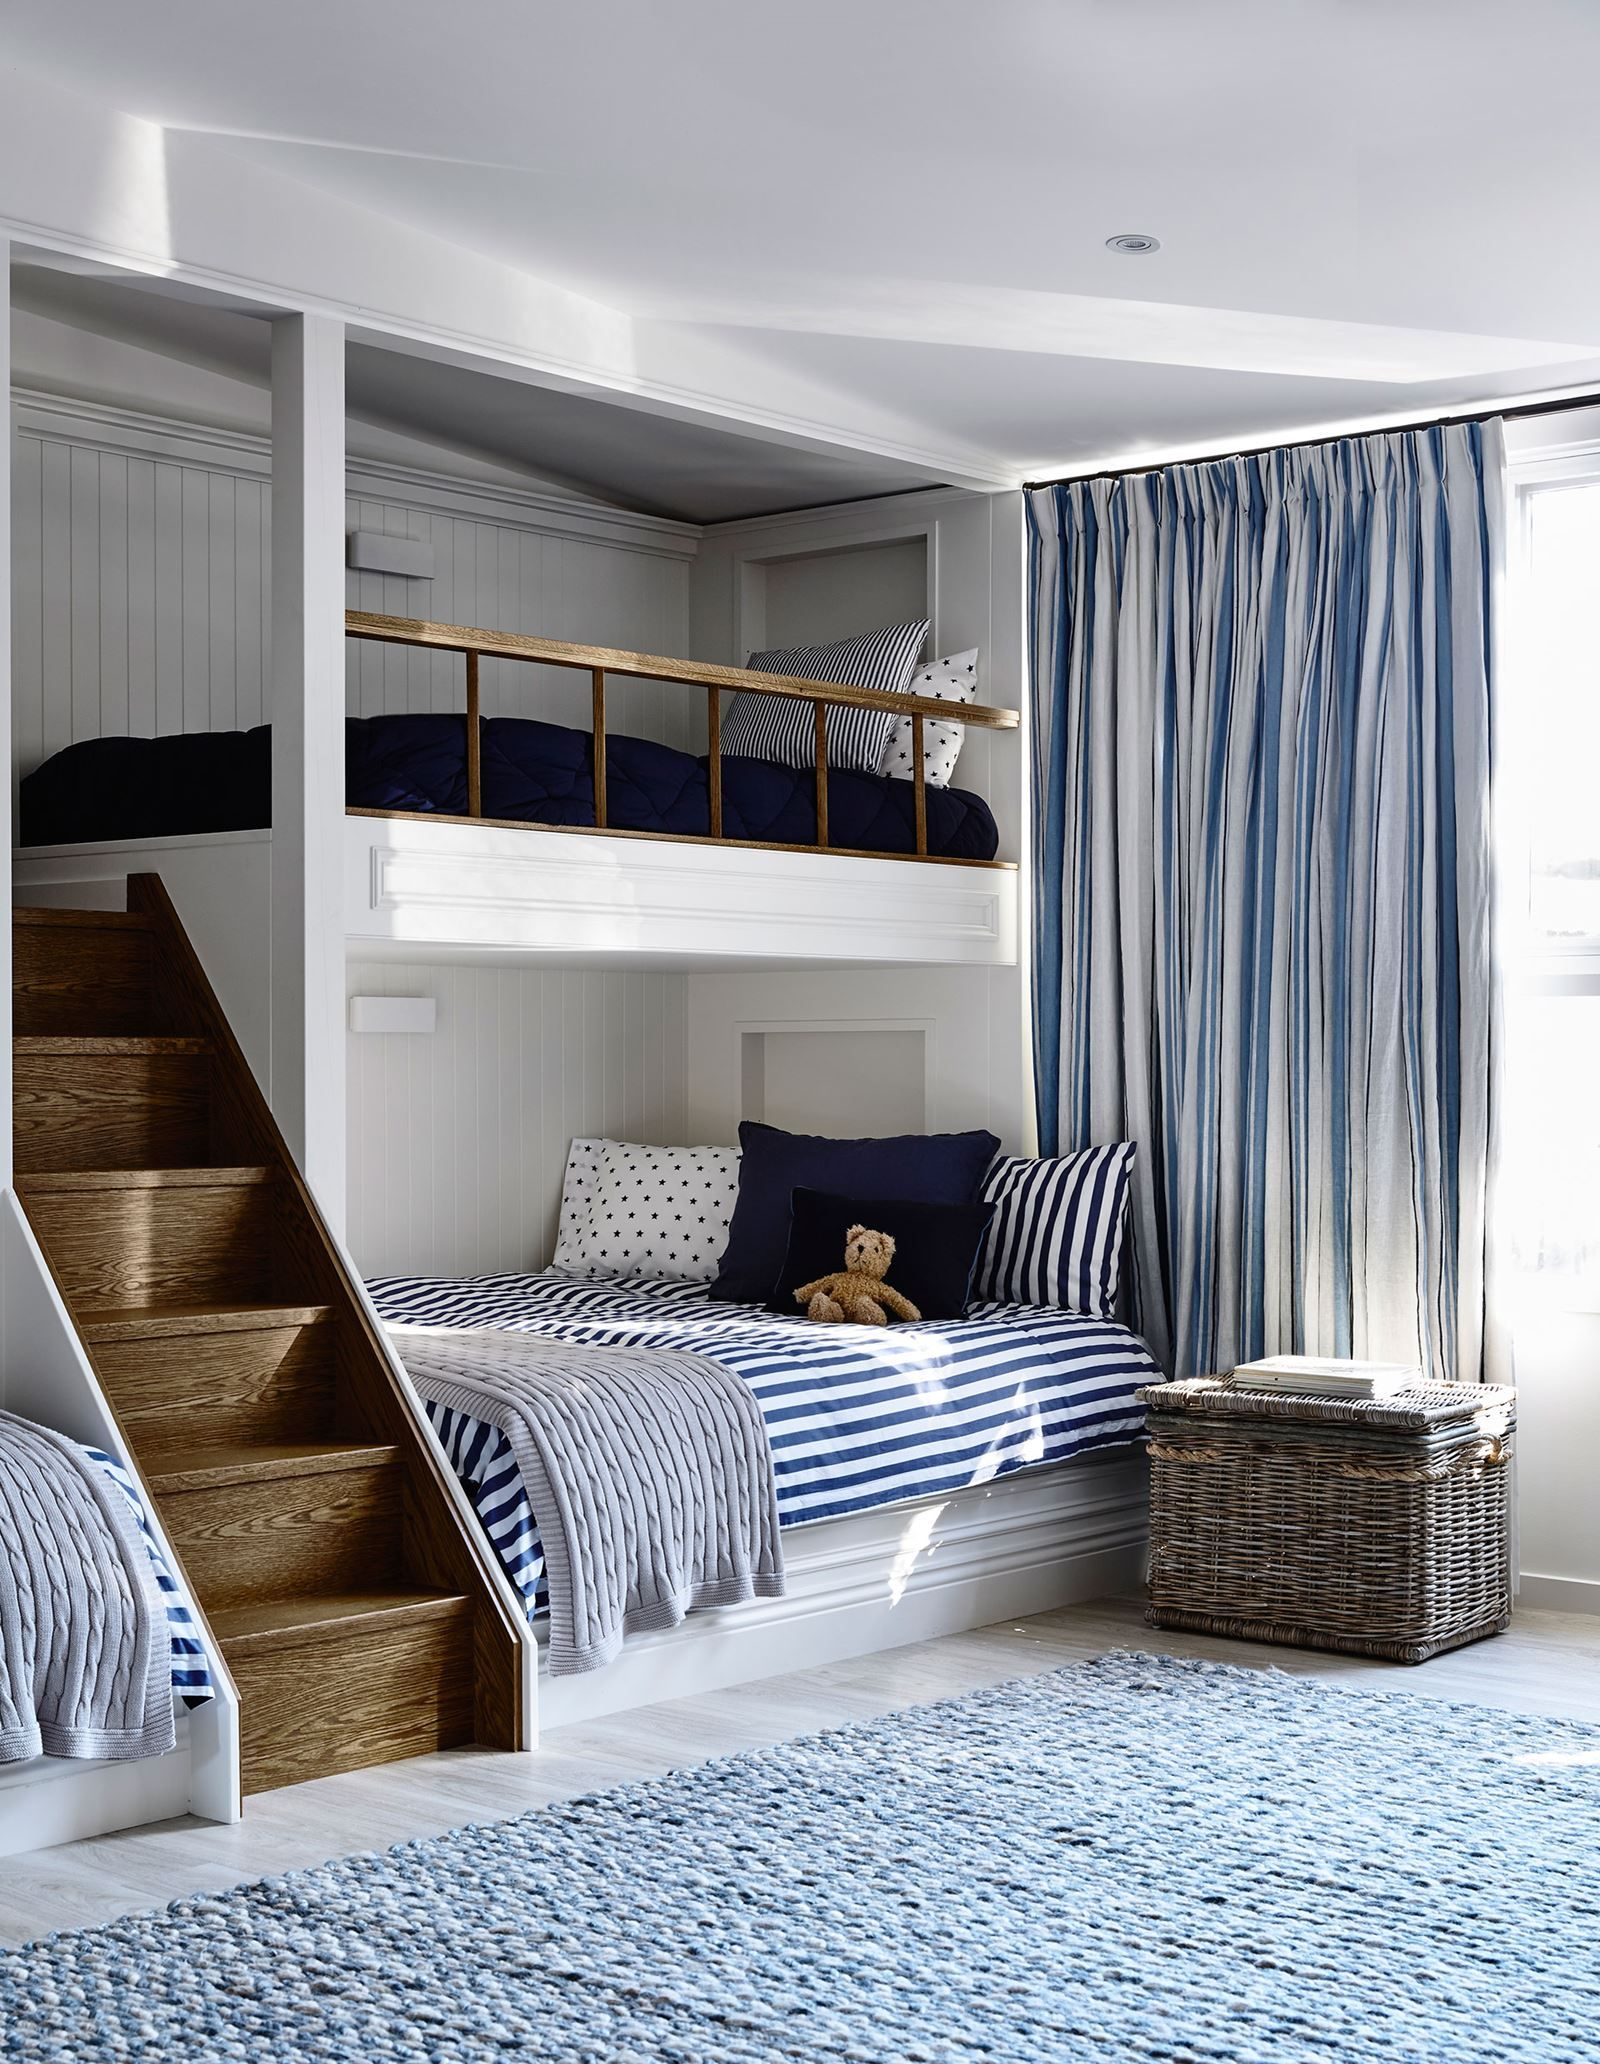 Built In Bunk Beds The Homeowners Wanted A Fun Retreat To House All Their Grandkids